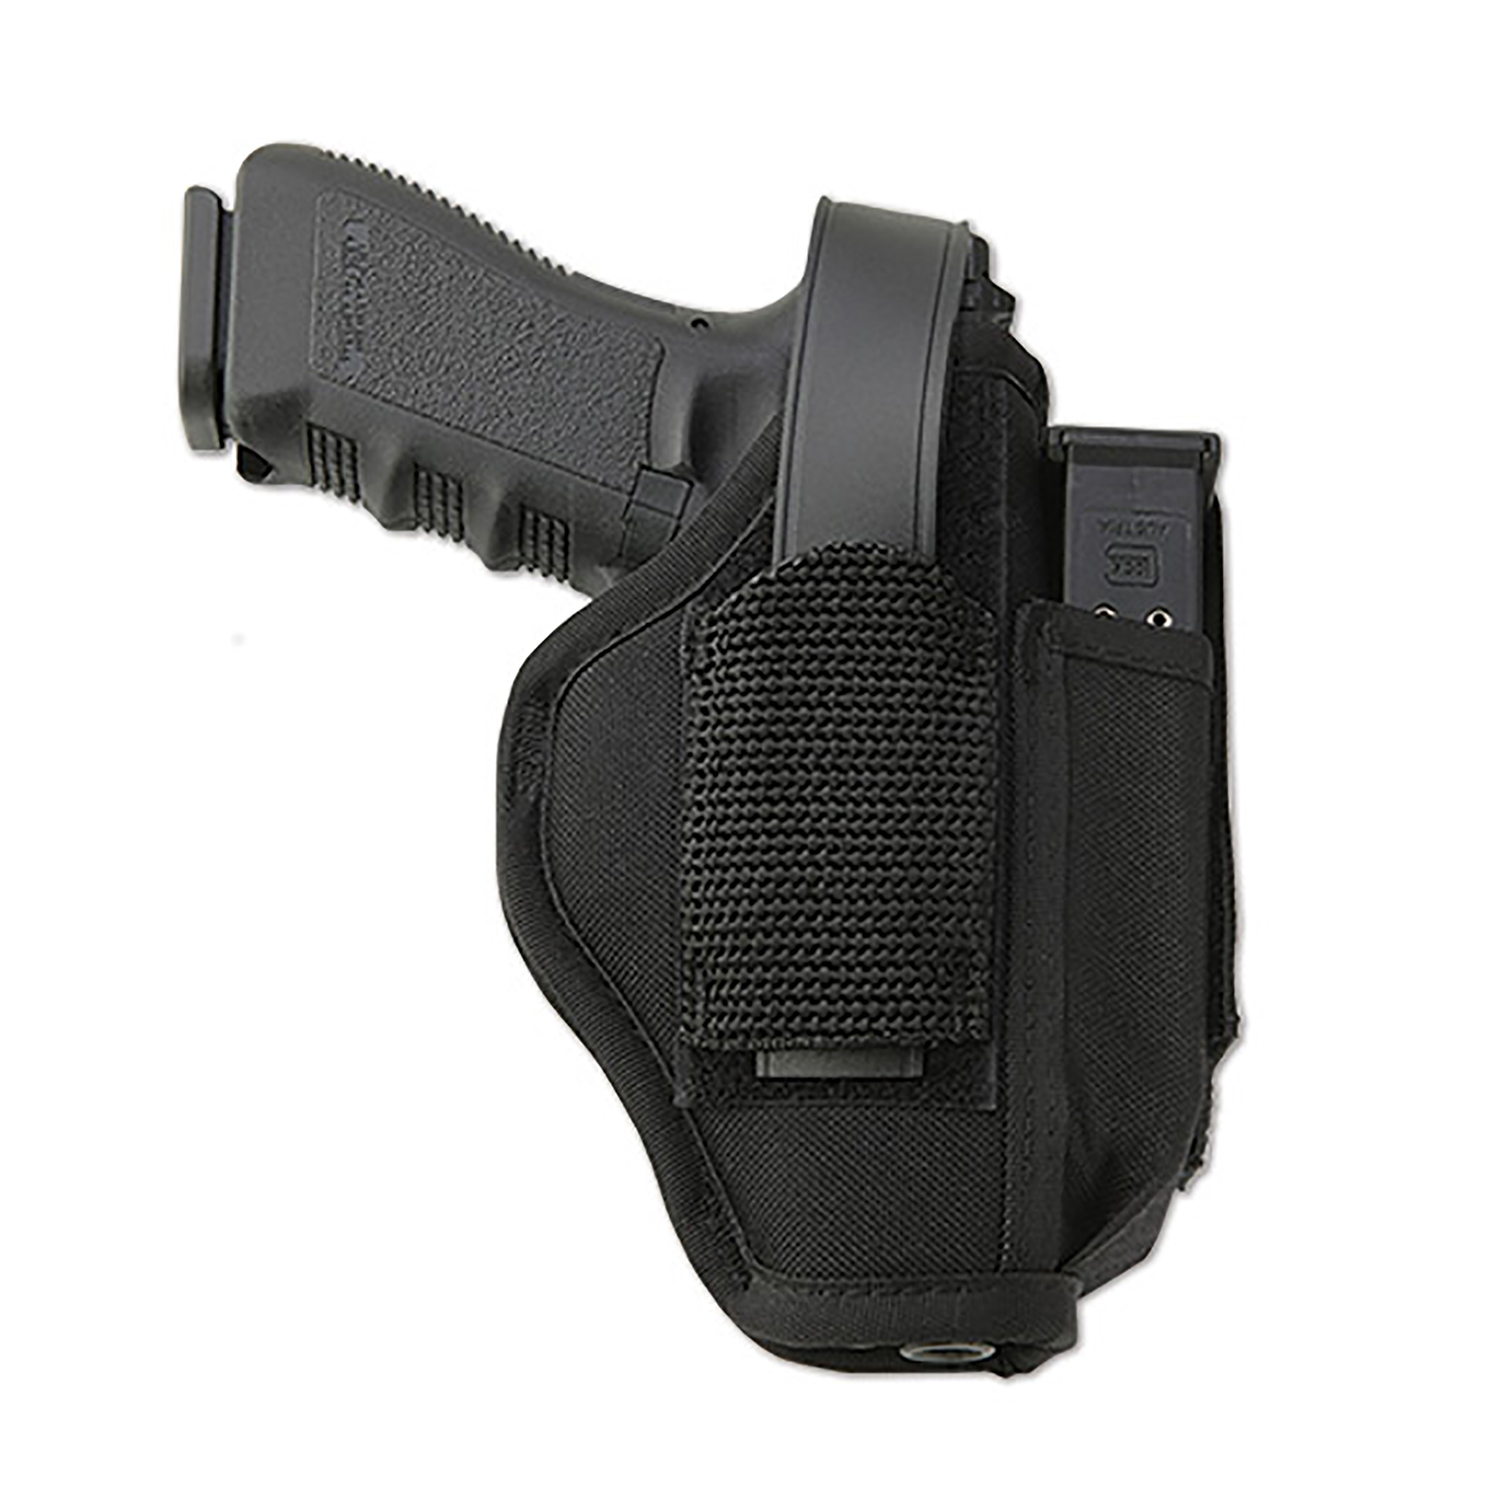 Uncle Mikes Ambidextrous Holster with Mag Pouch